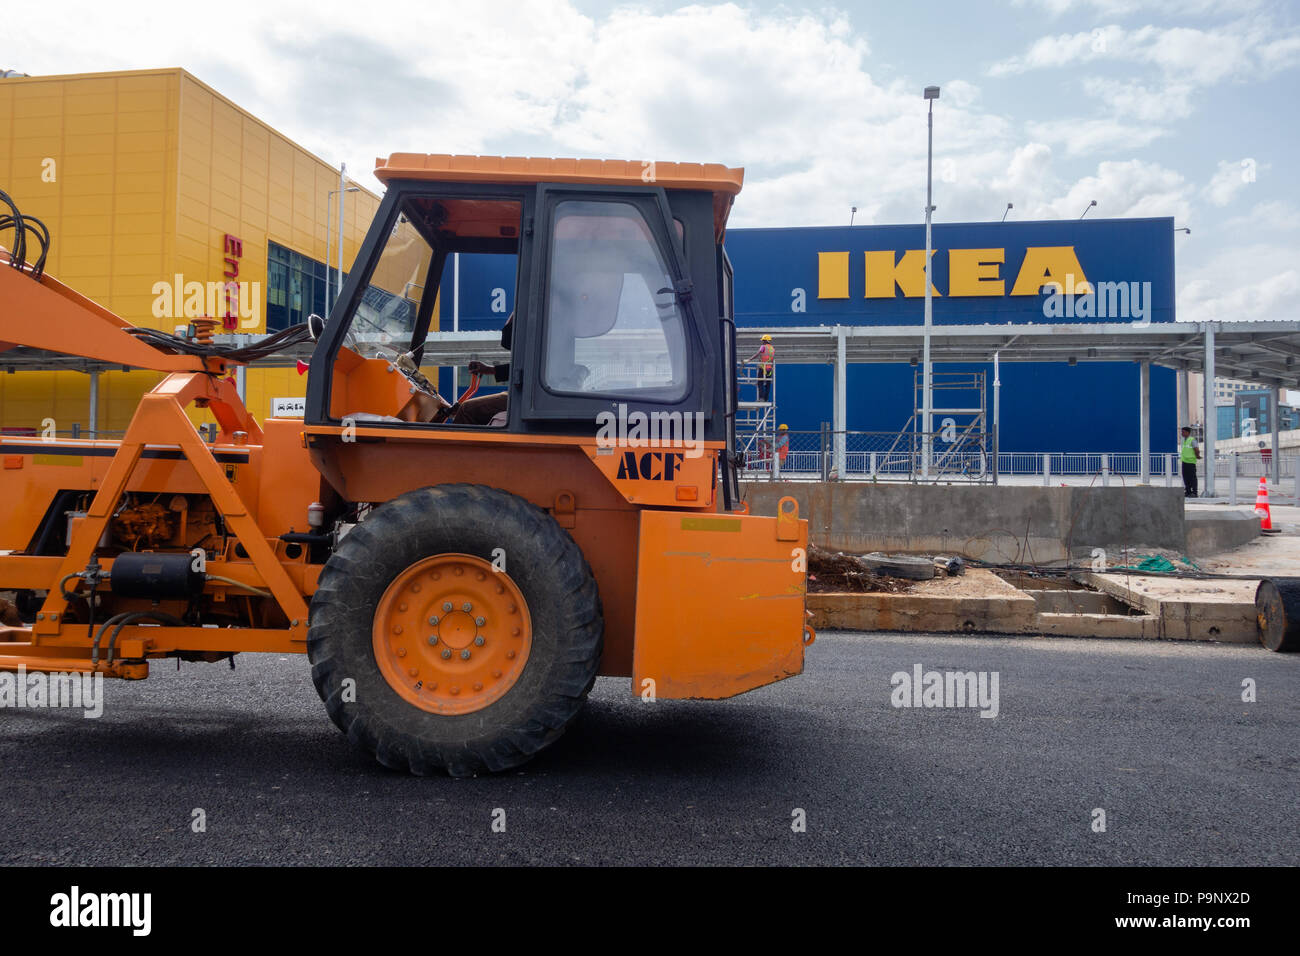 Swedish furniture giant IKEA will open it's first store in India on August 09,2018 in the southern city of Hyderabad.It was scheduled to open on July  - Stock Image